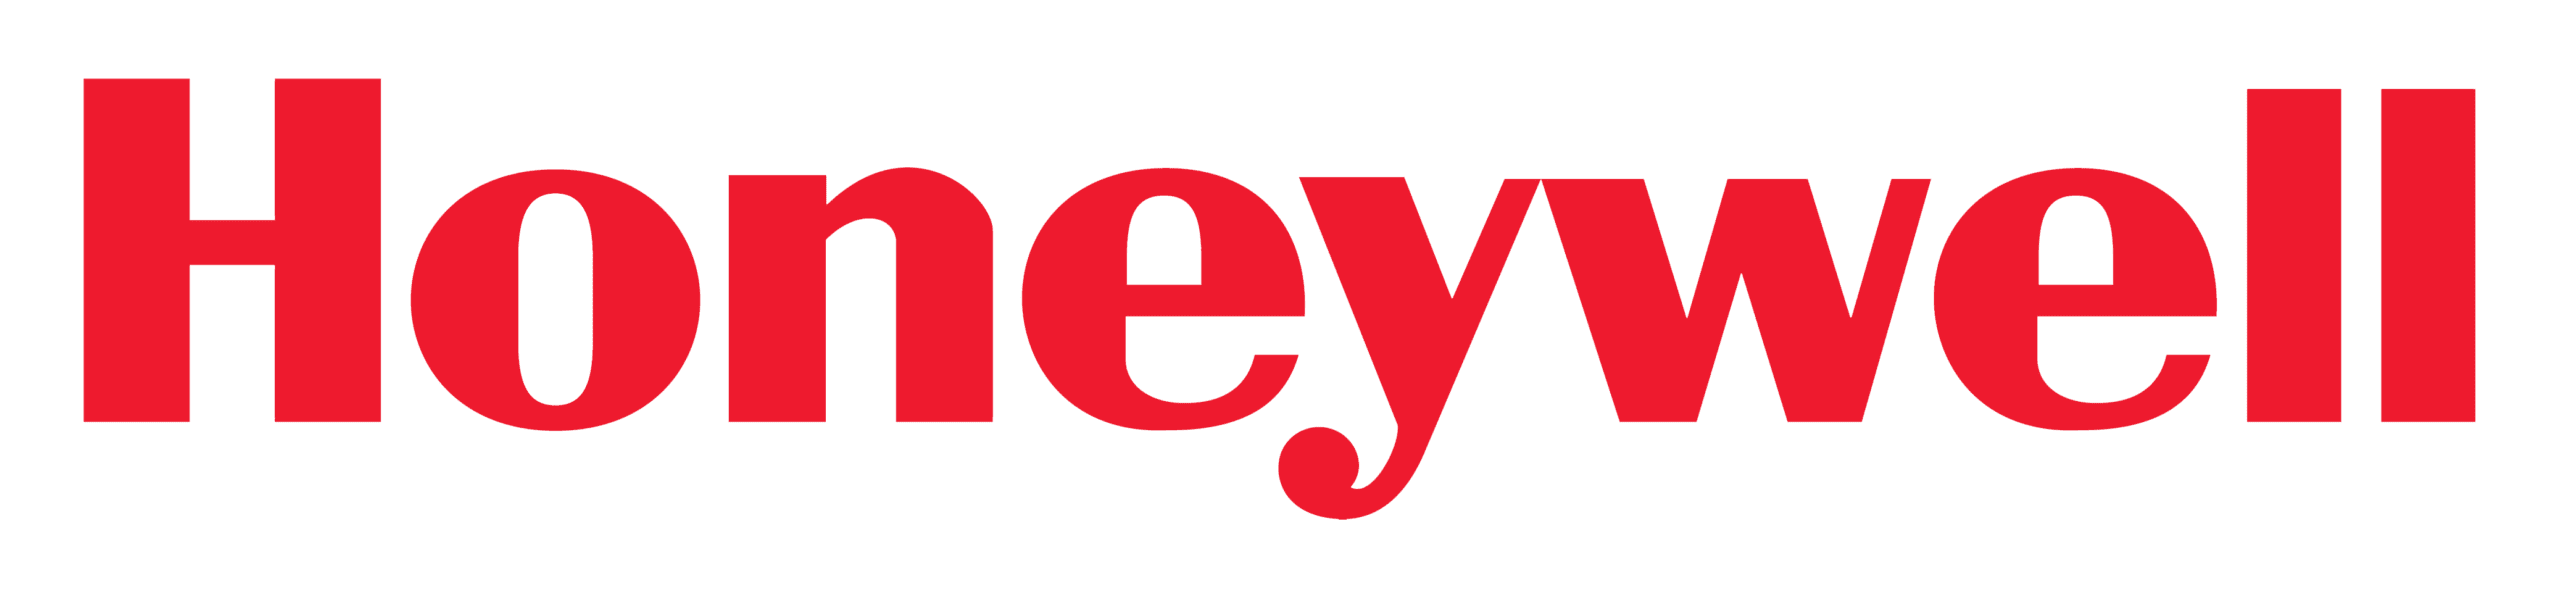 Honeywell Logo PNG Transparent